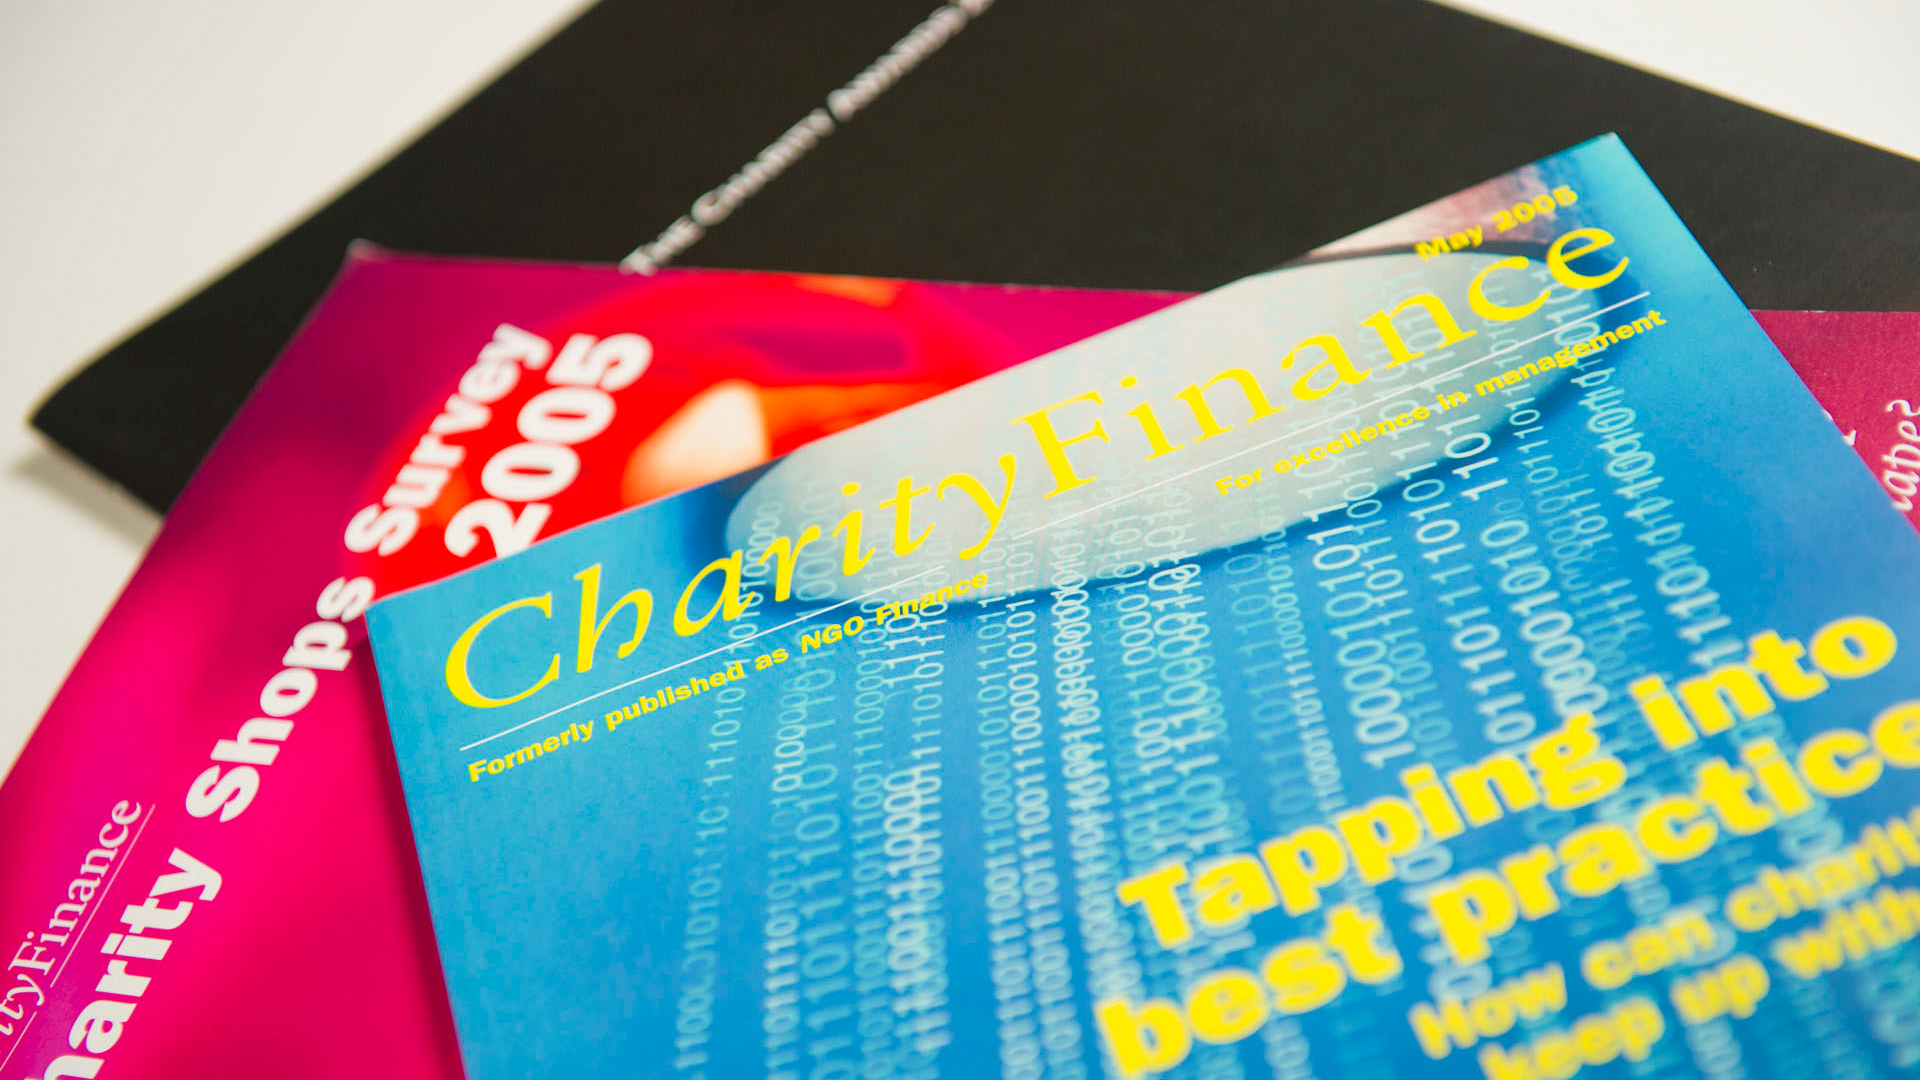 Charity Finance magazine